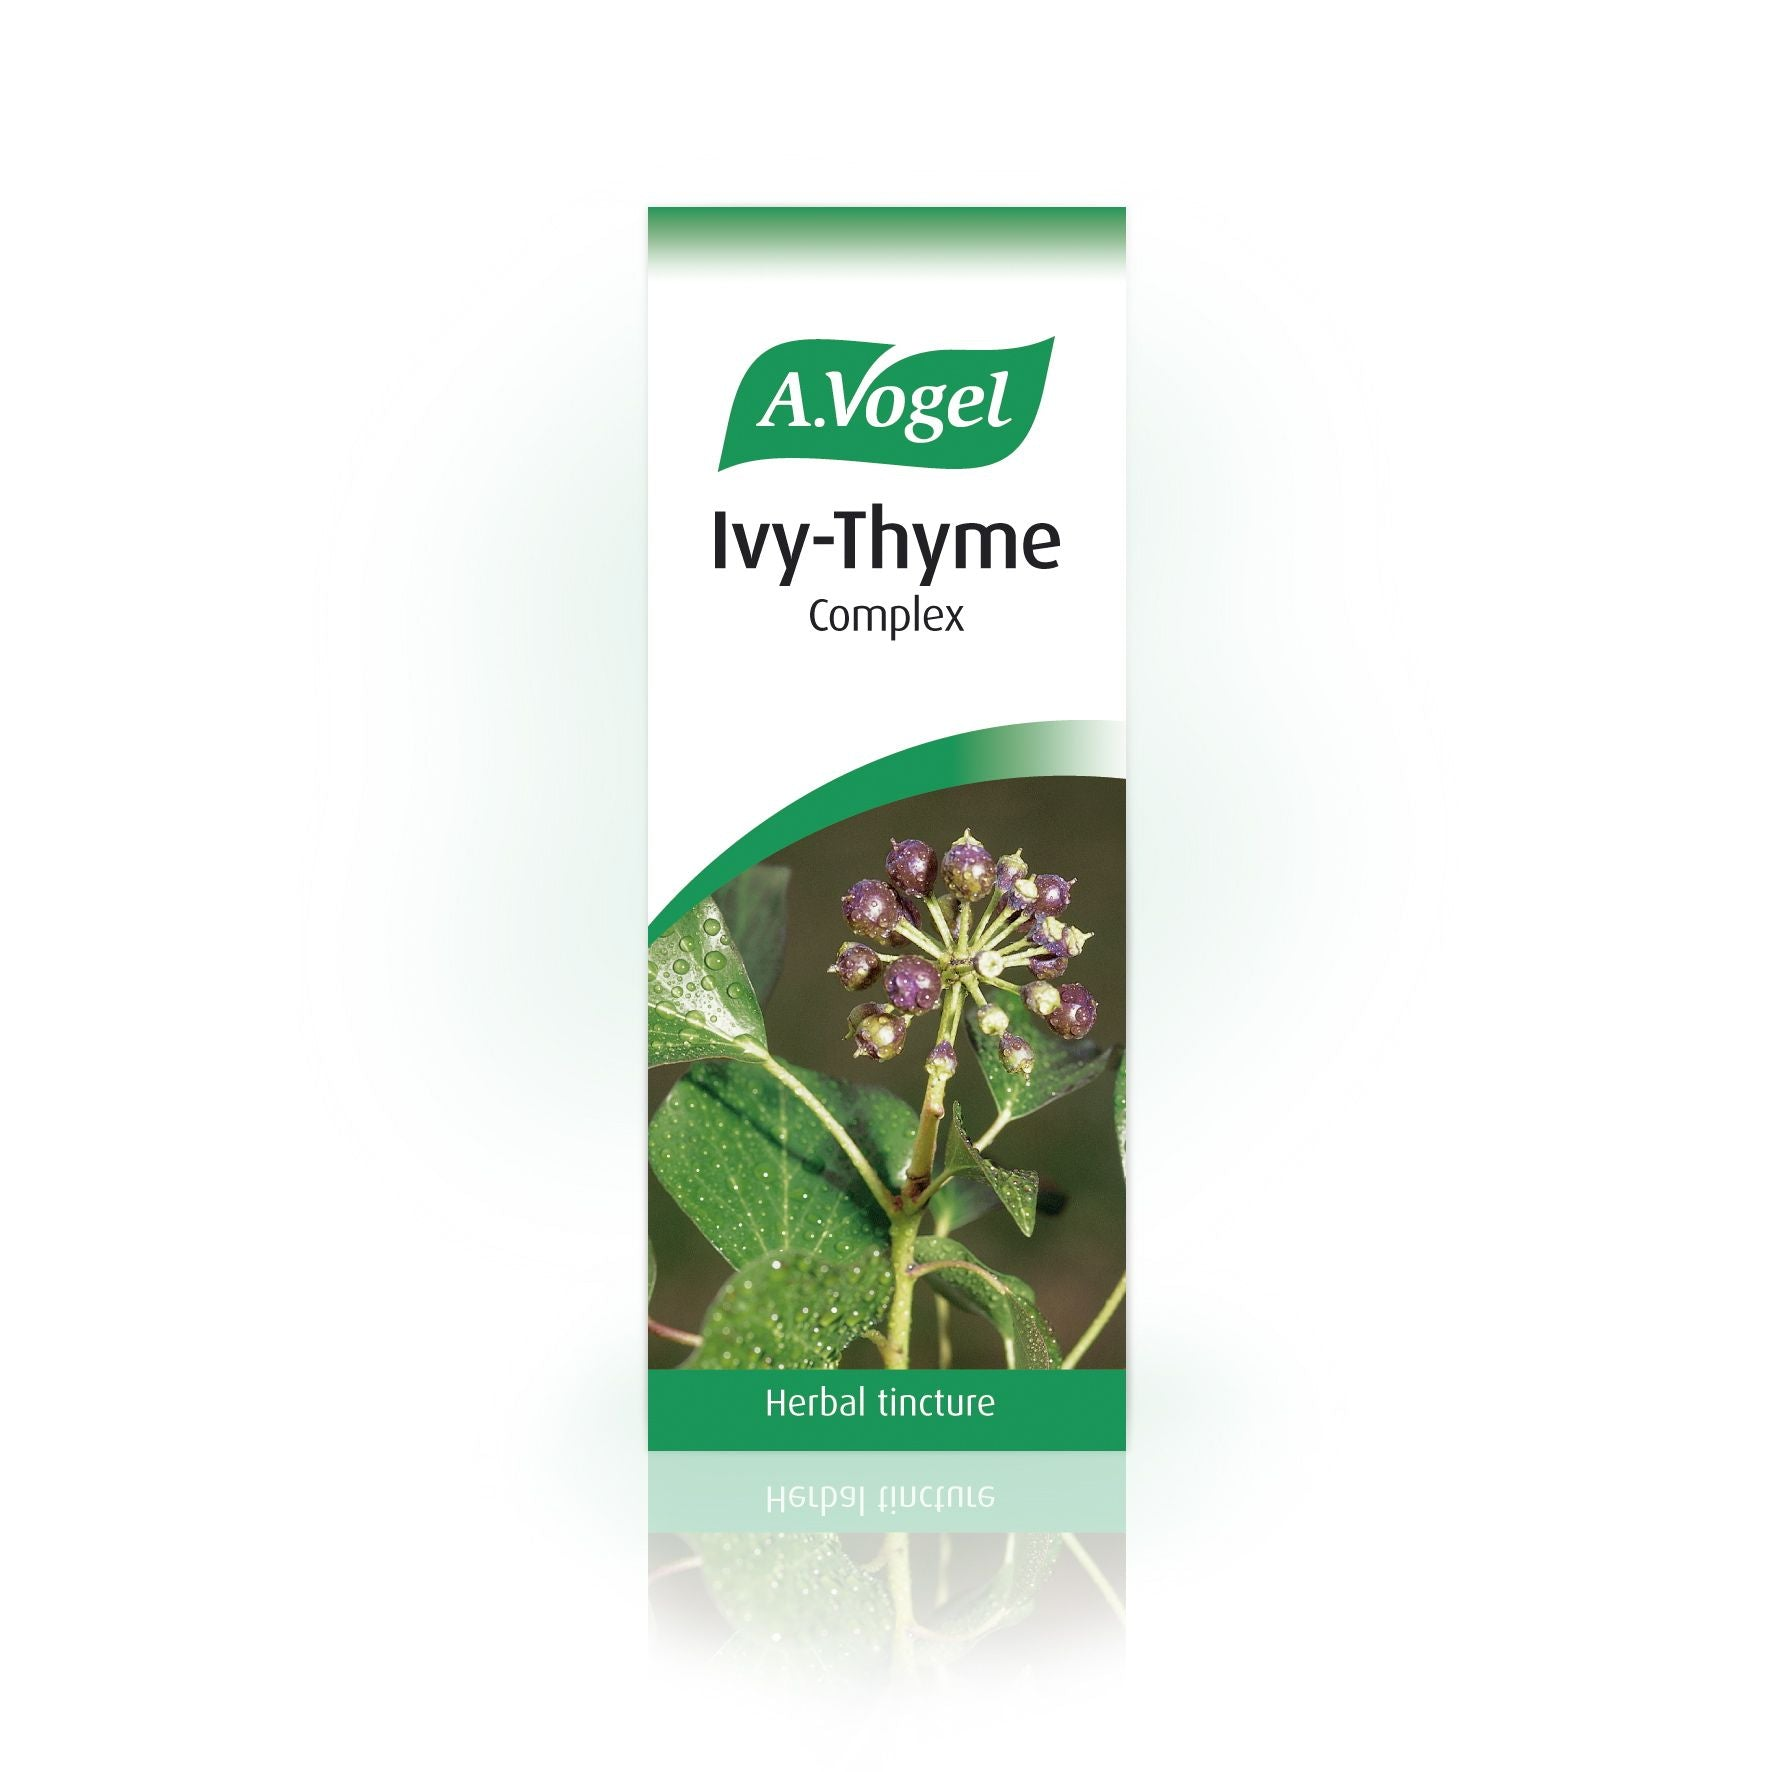 A. Vogel Ivy-Thyme Complex